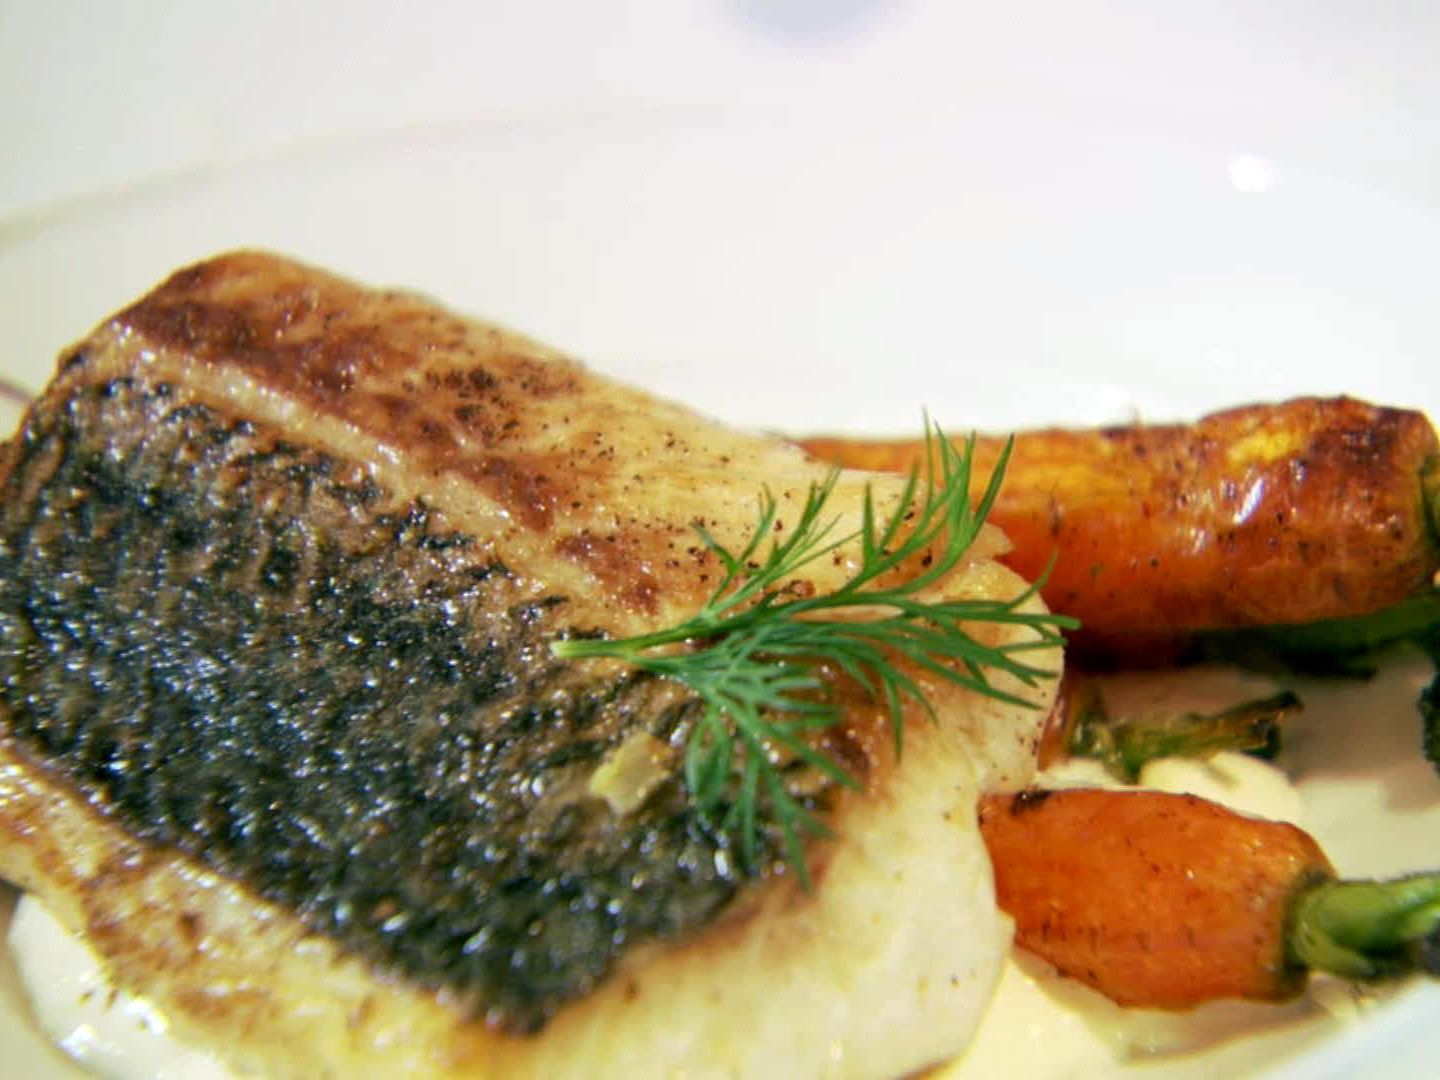 Grilled Striped Bass Recipes Barefoot Contessa striped bass and preserved lemon dressing with grilled carrots